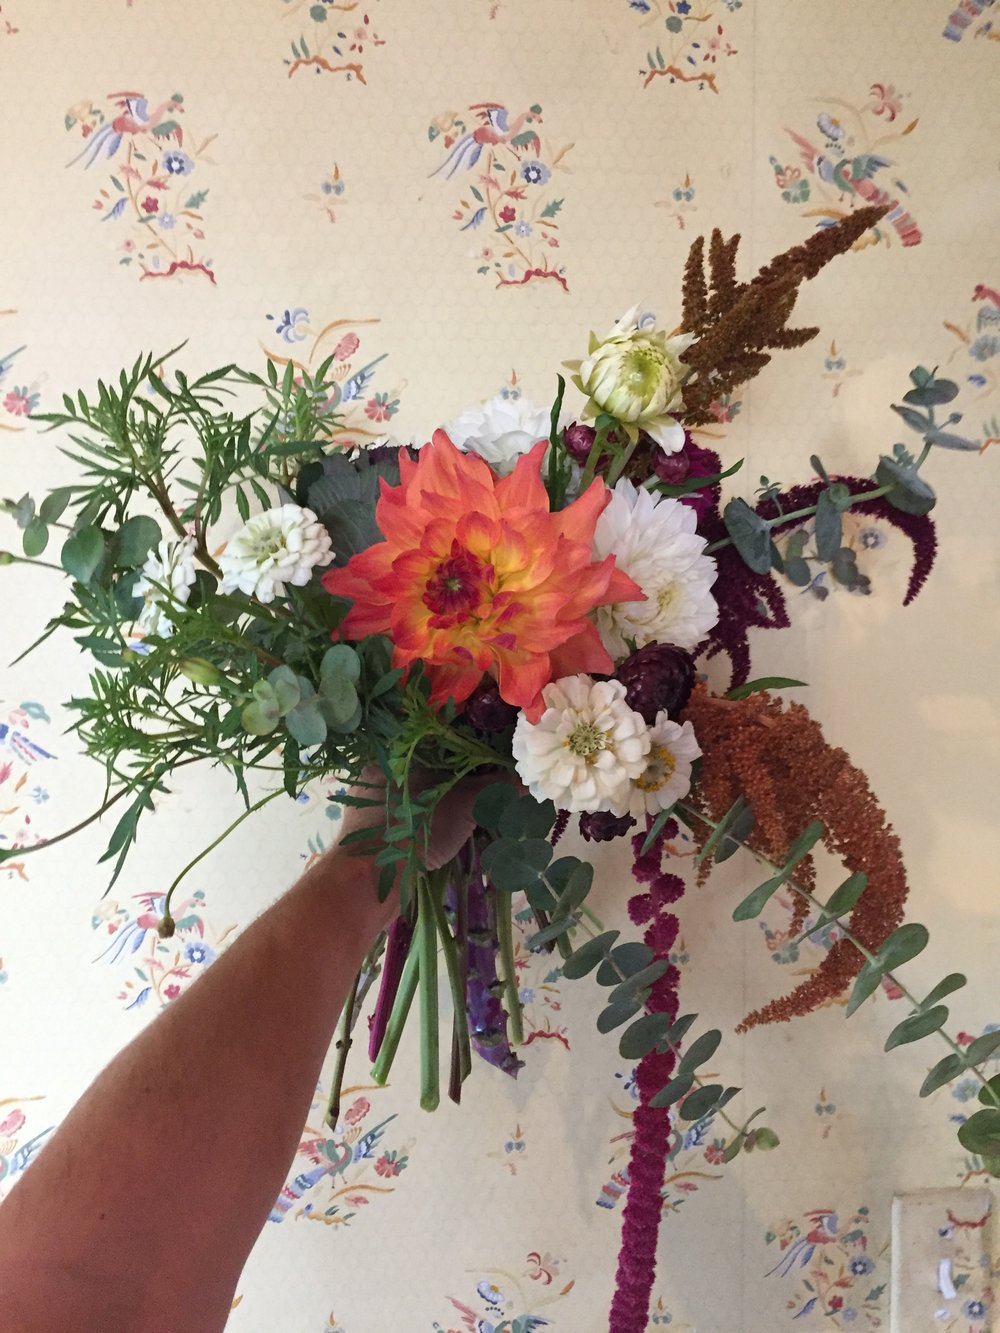 A favorite bridal bouquet of last week, shown off on our historic kitchen wallpaper.